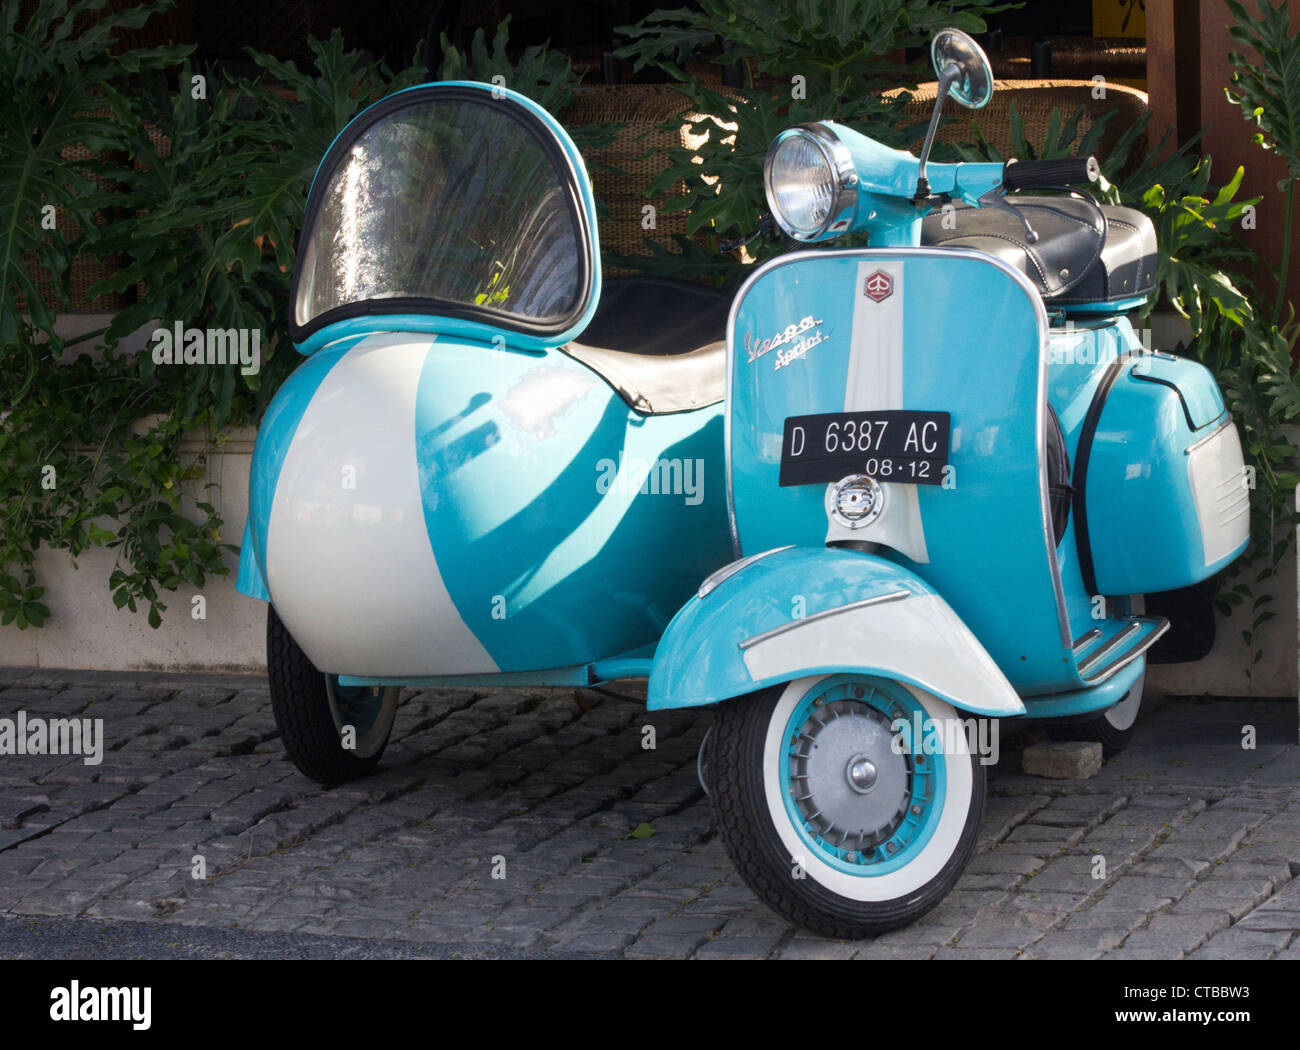 Scooter With Sidecar Stock Photos Scooter With Sidecar